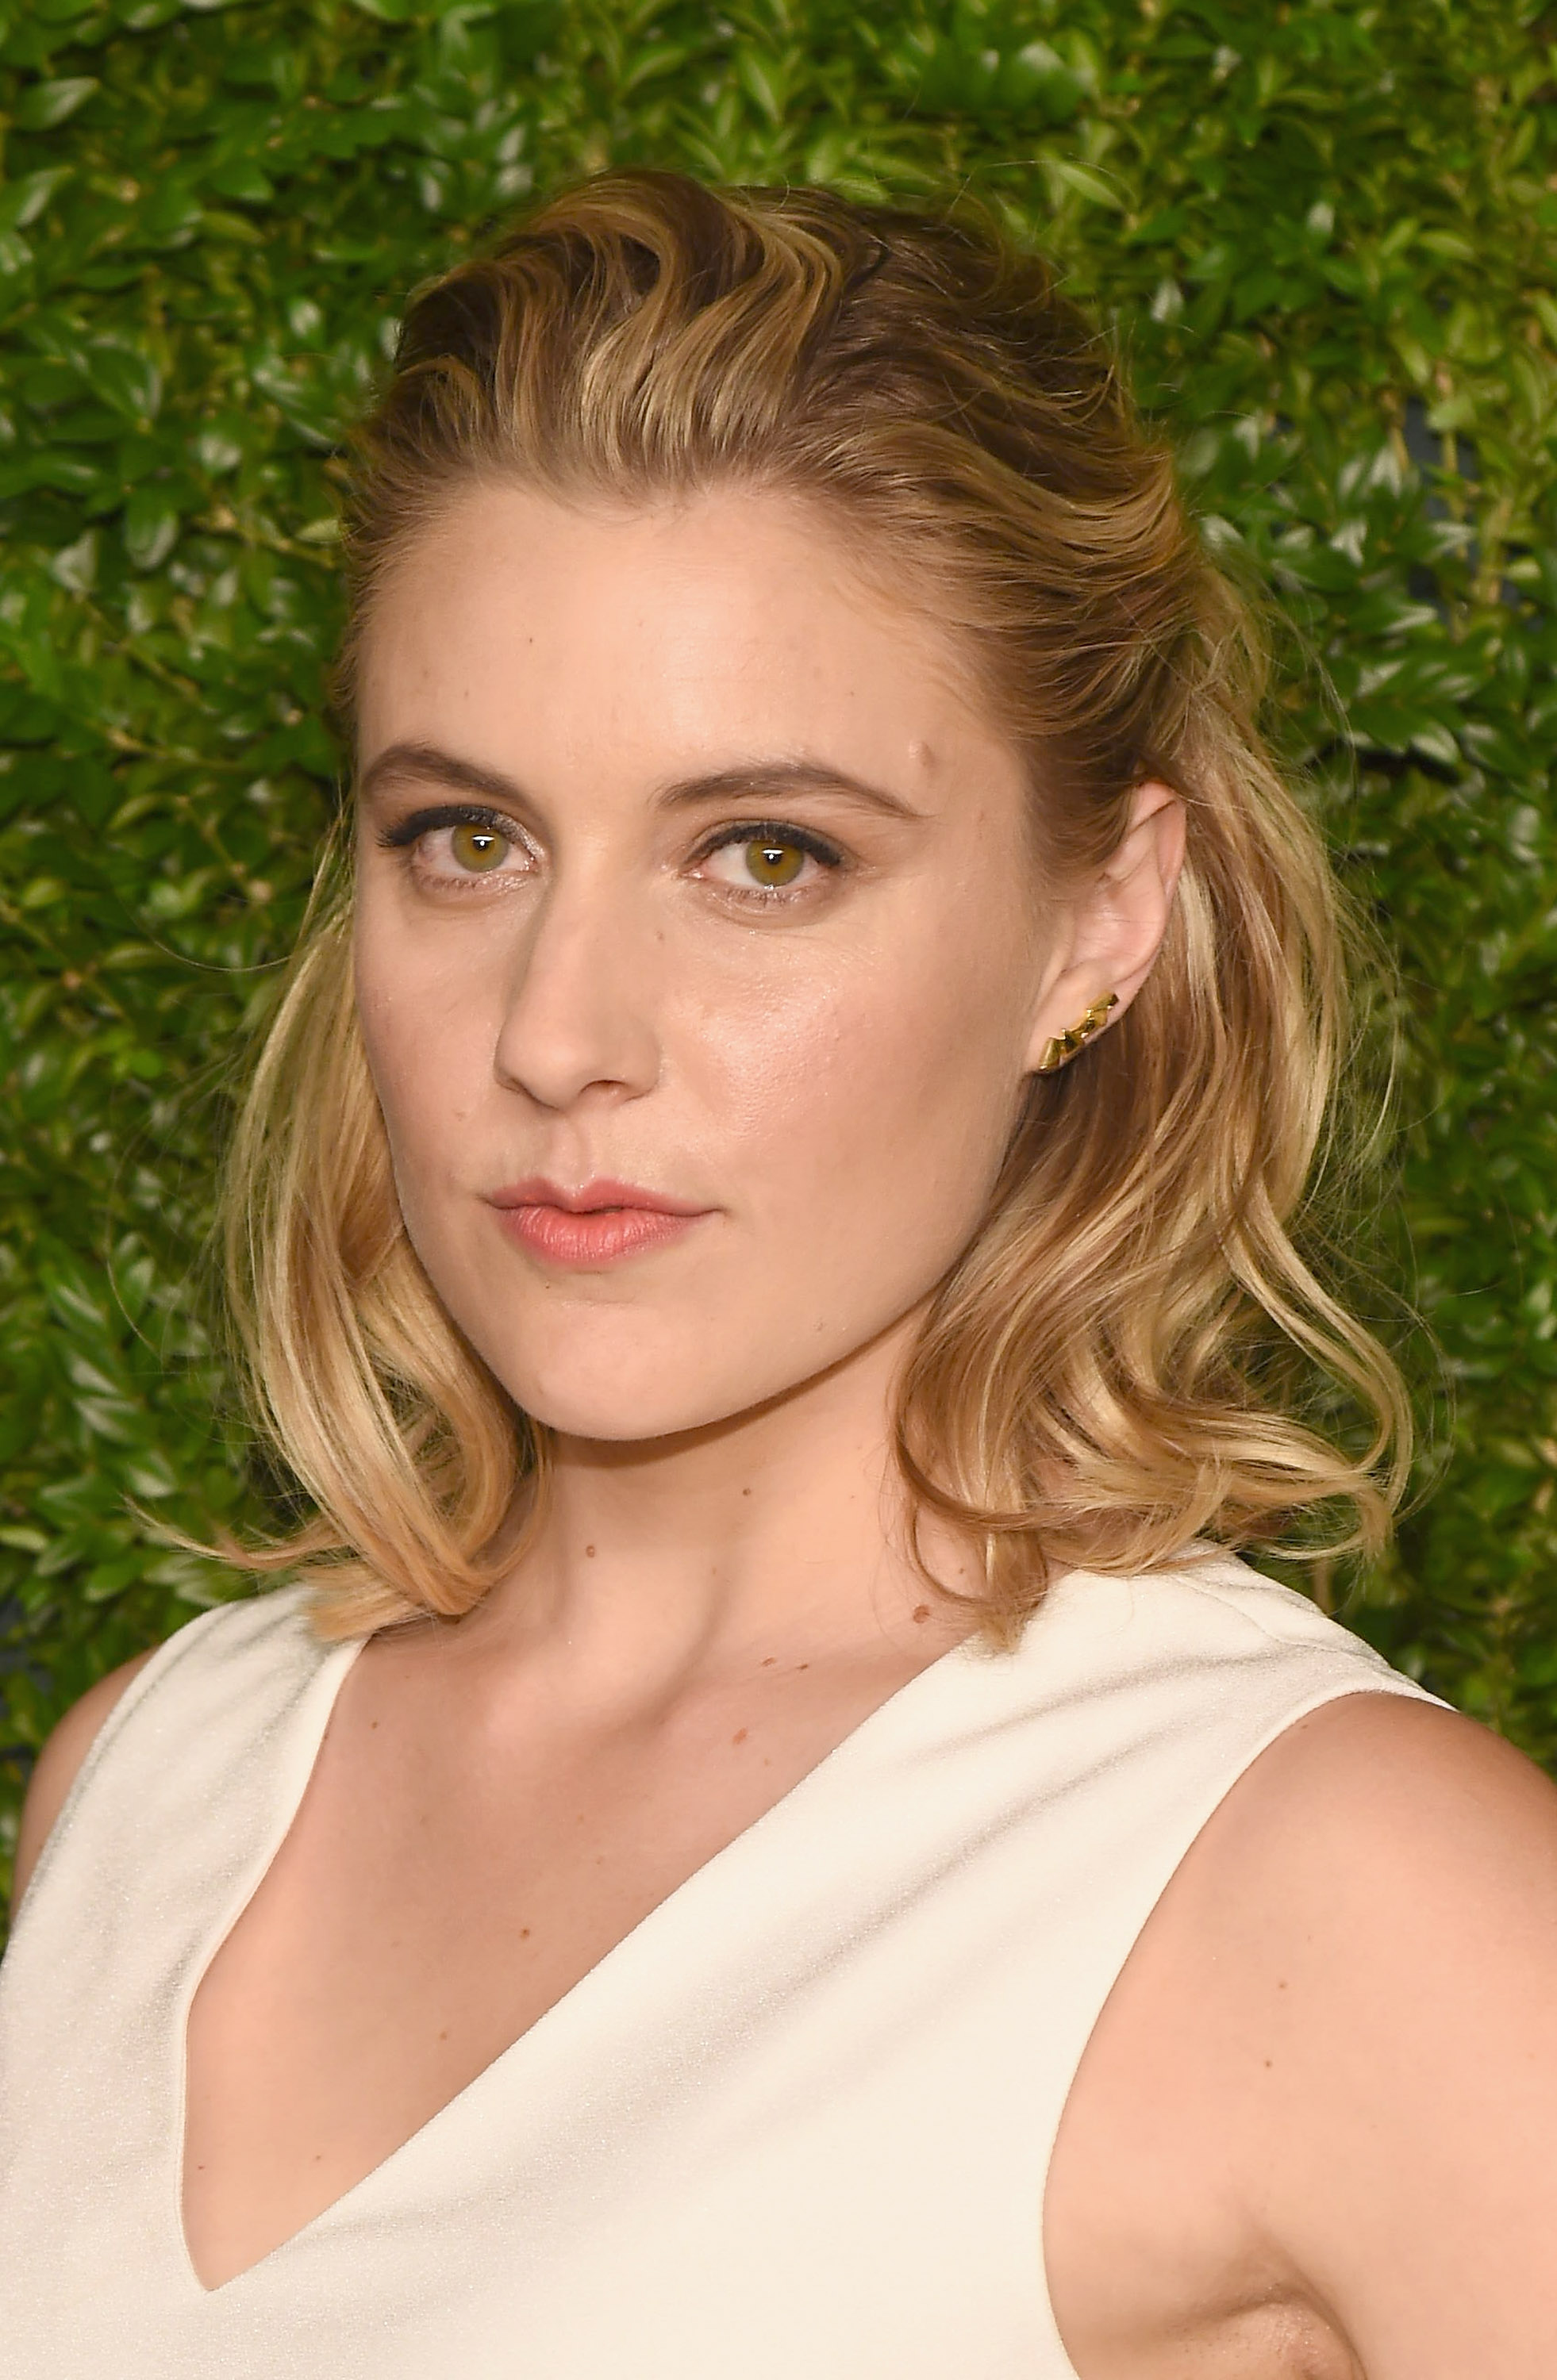 Actress Greta Gerwig attends The 11th Annual CFDA/Vogue Fashion Fund Awards at Spring Studios on November 3, 2014 in New York City.